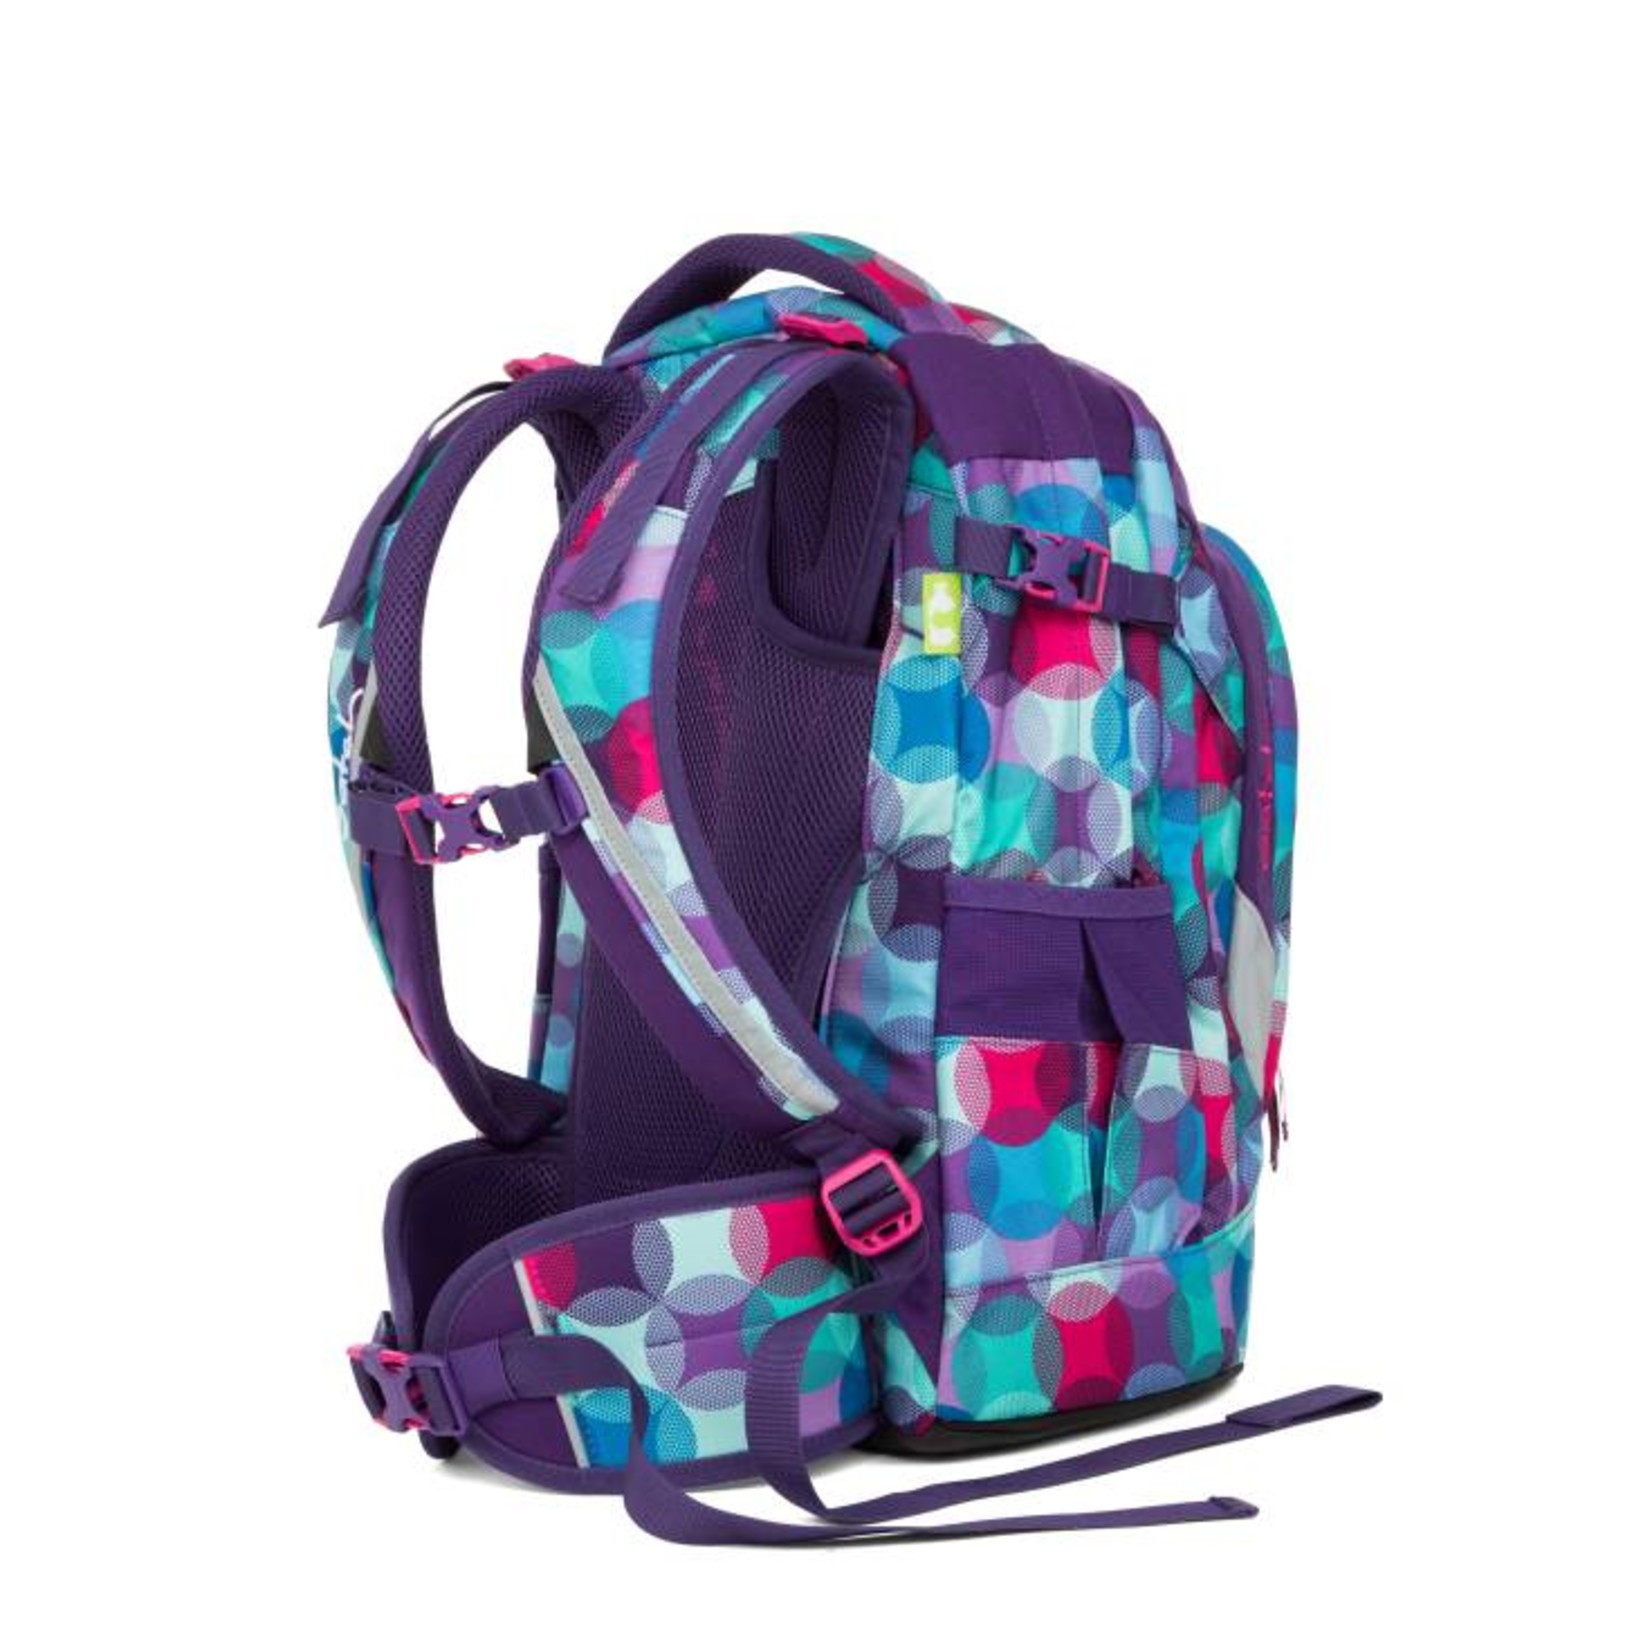 SATCH SATCH PACK Schulrucksack Hurly Pearly Bunte Punkte